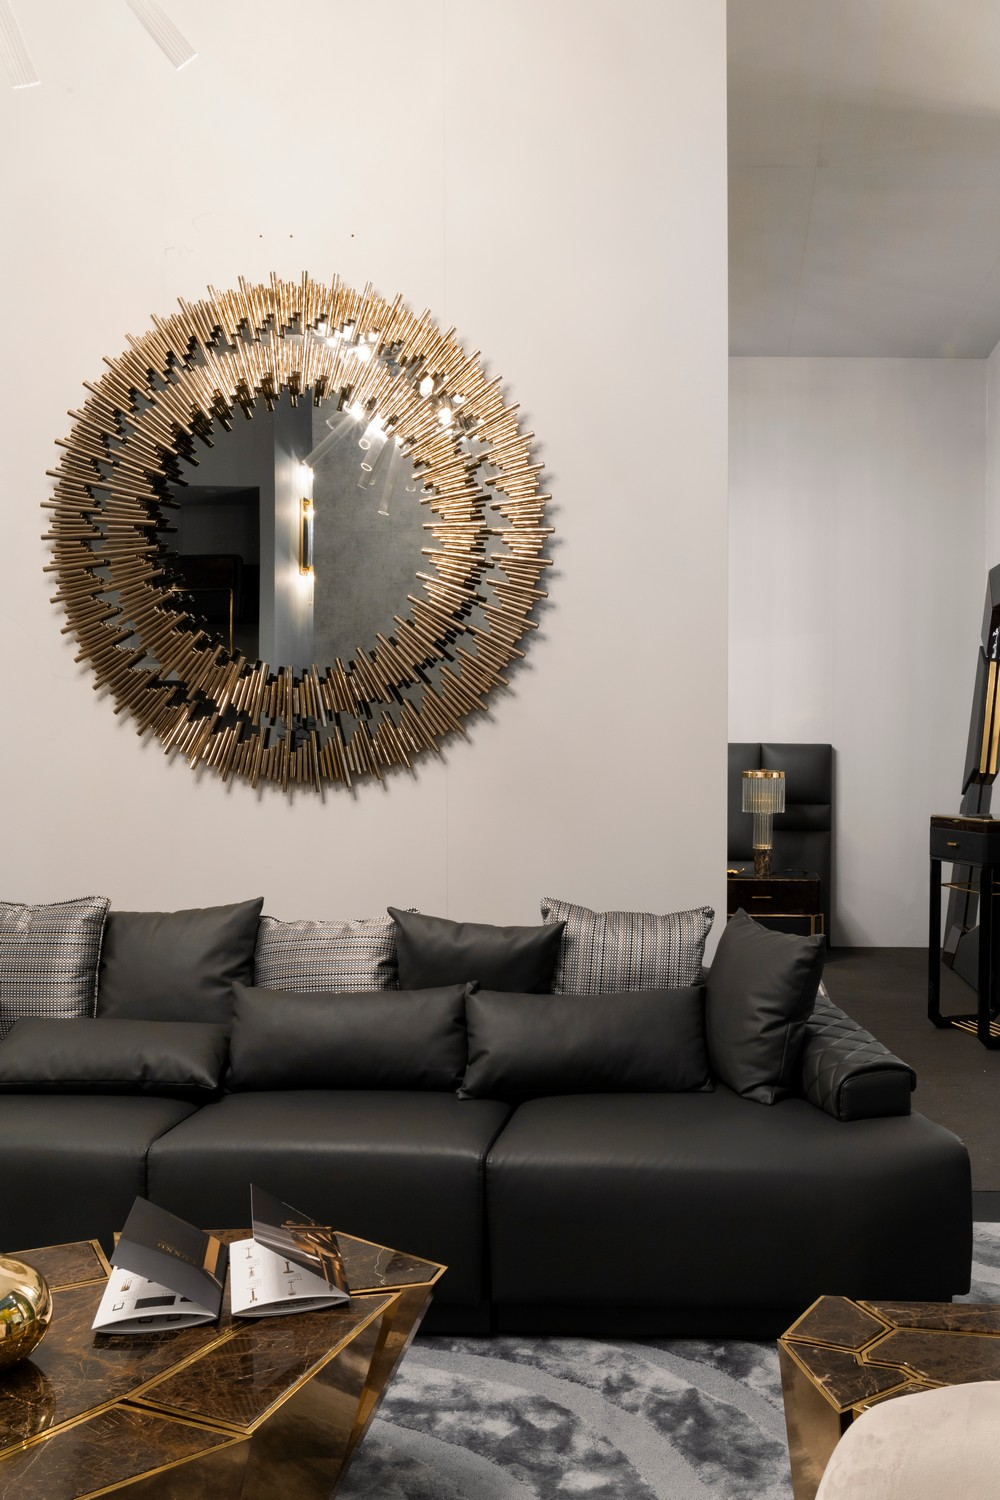 Home Decoration Ideas 10 Ostentatious Mirrors for a Unique Aesthetic 15 home decoration ideas Home Decoration Ideas: 10 Ostentatious Mirrors for a Unique Aesthetic Home Decoration Ideas 10 Ostentatious Mirrors for a Unique Aesthetic 15